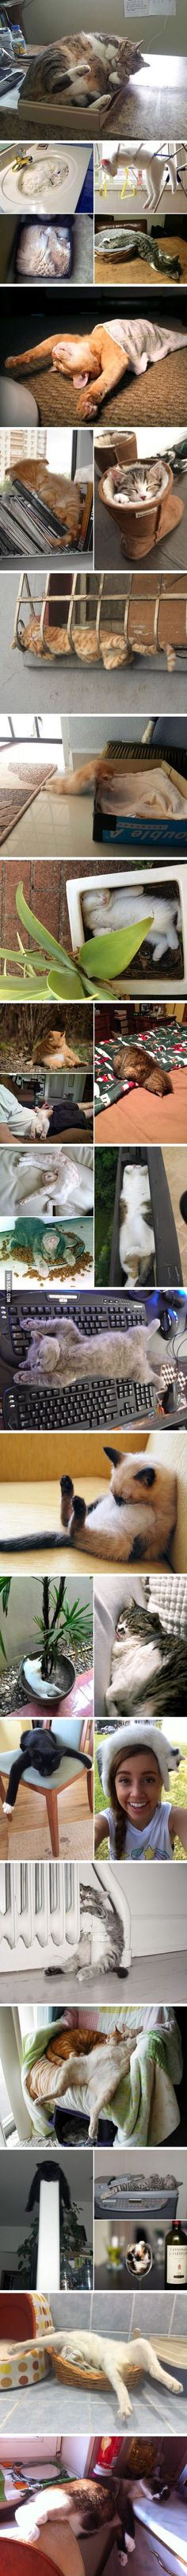 """These cats know how to master the art of """"Sleep-fu"""""""